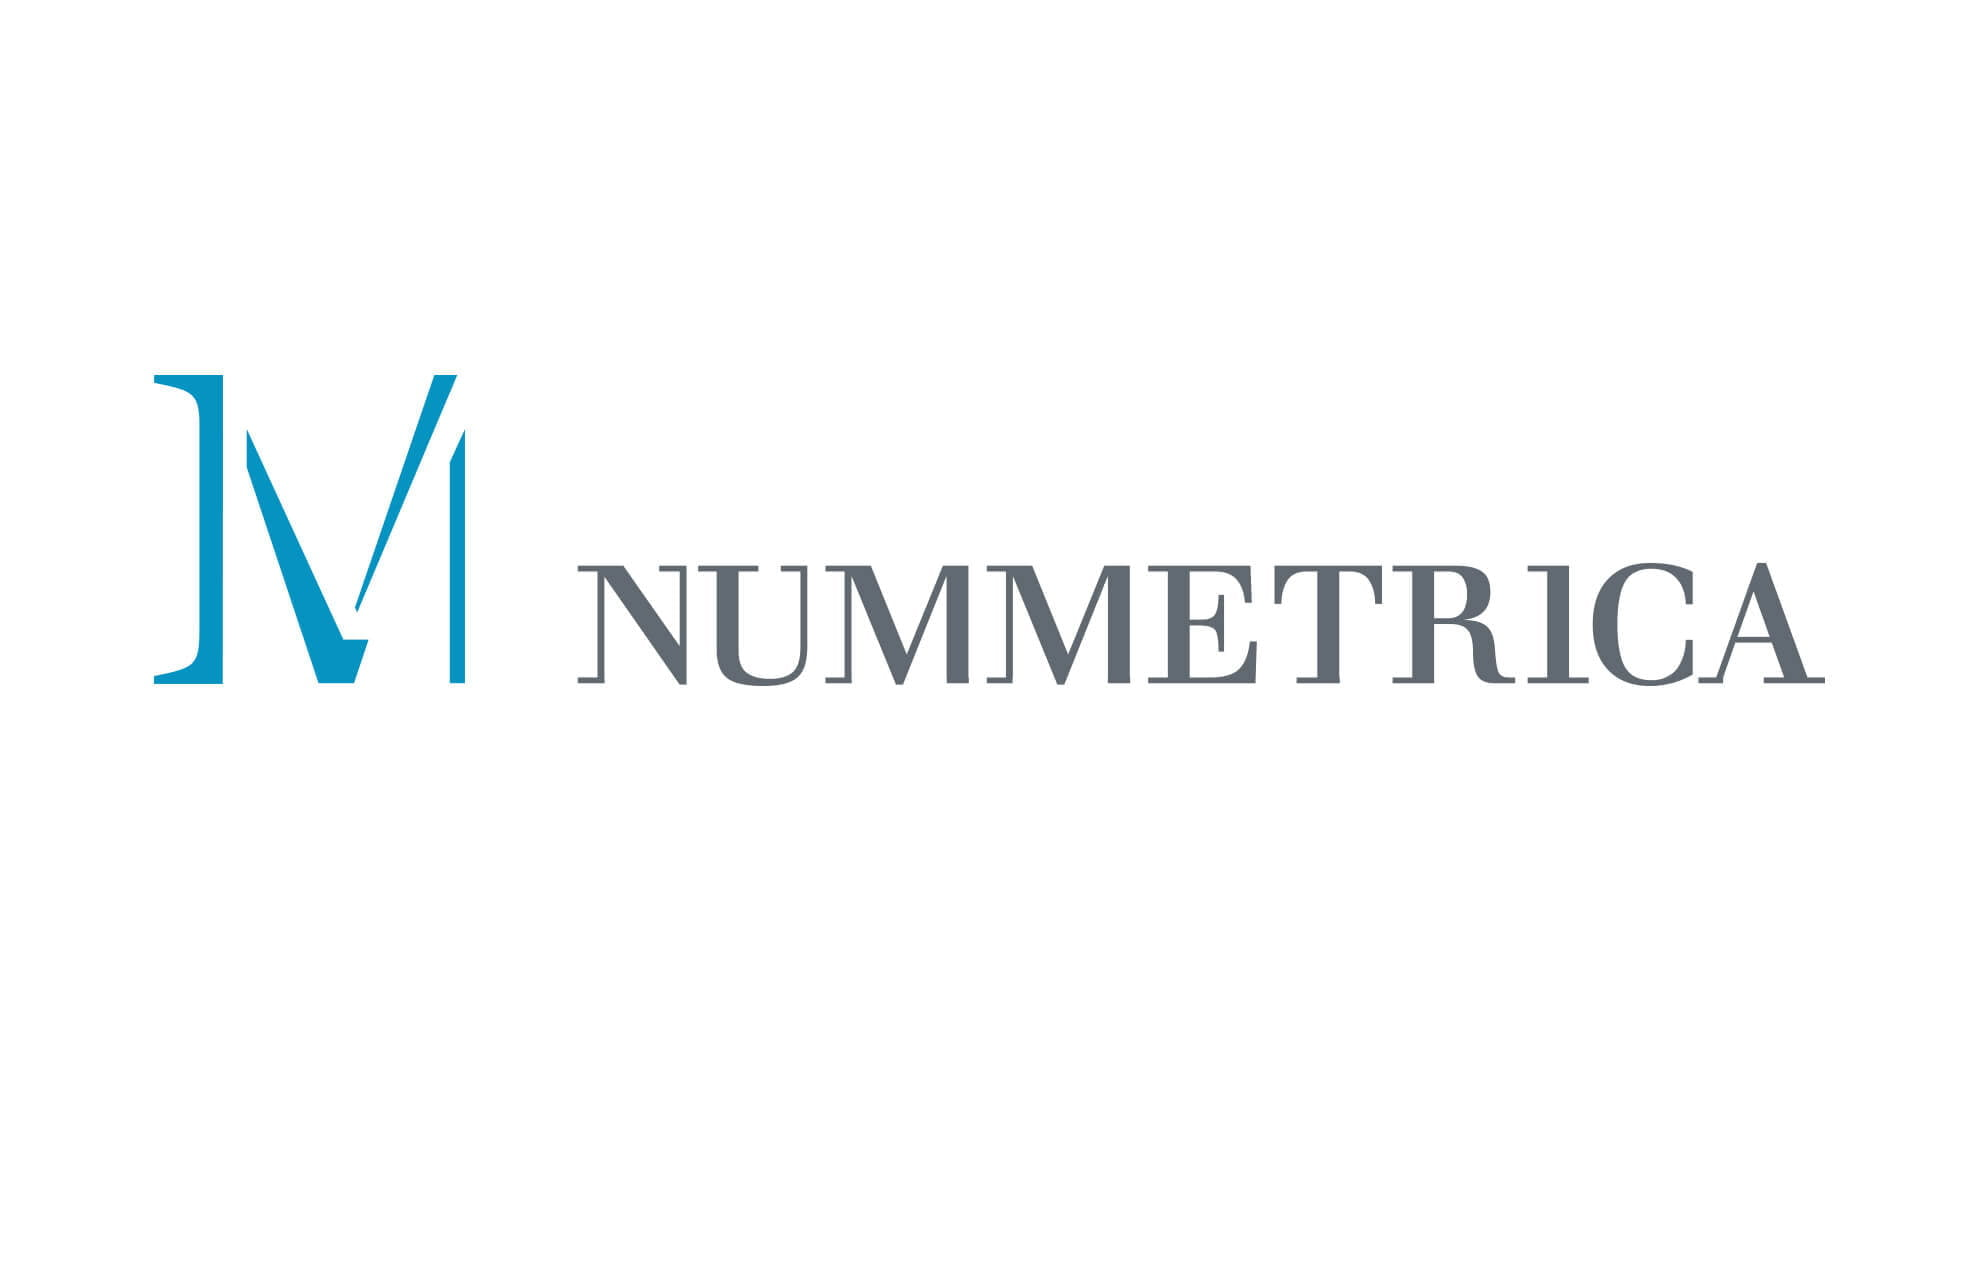 nummetrica design logo2 - Branding. Graphic design. Numismatic